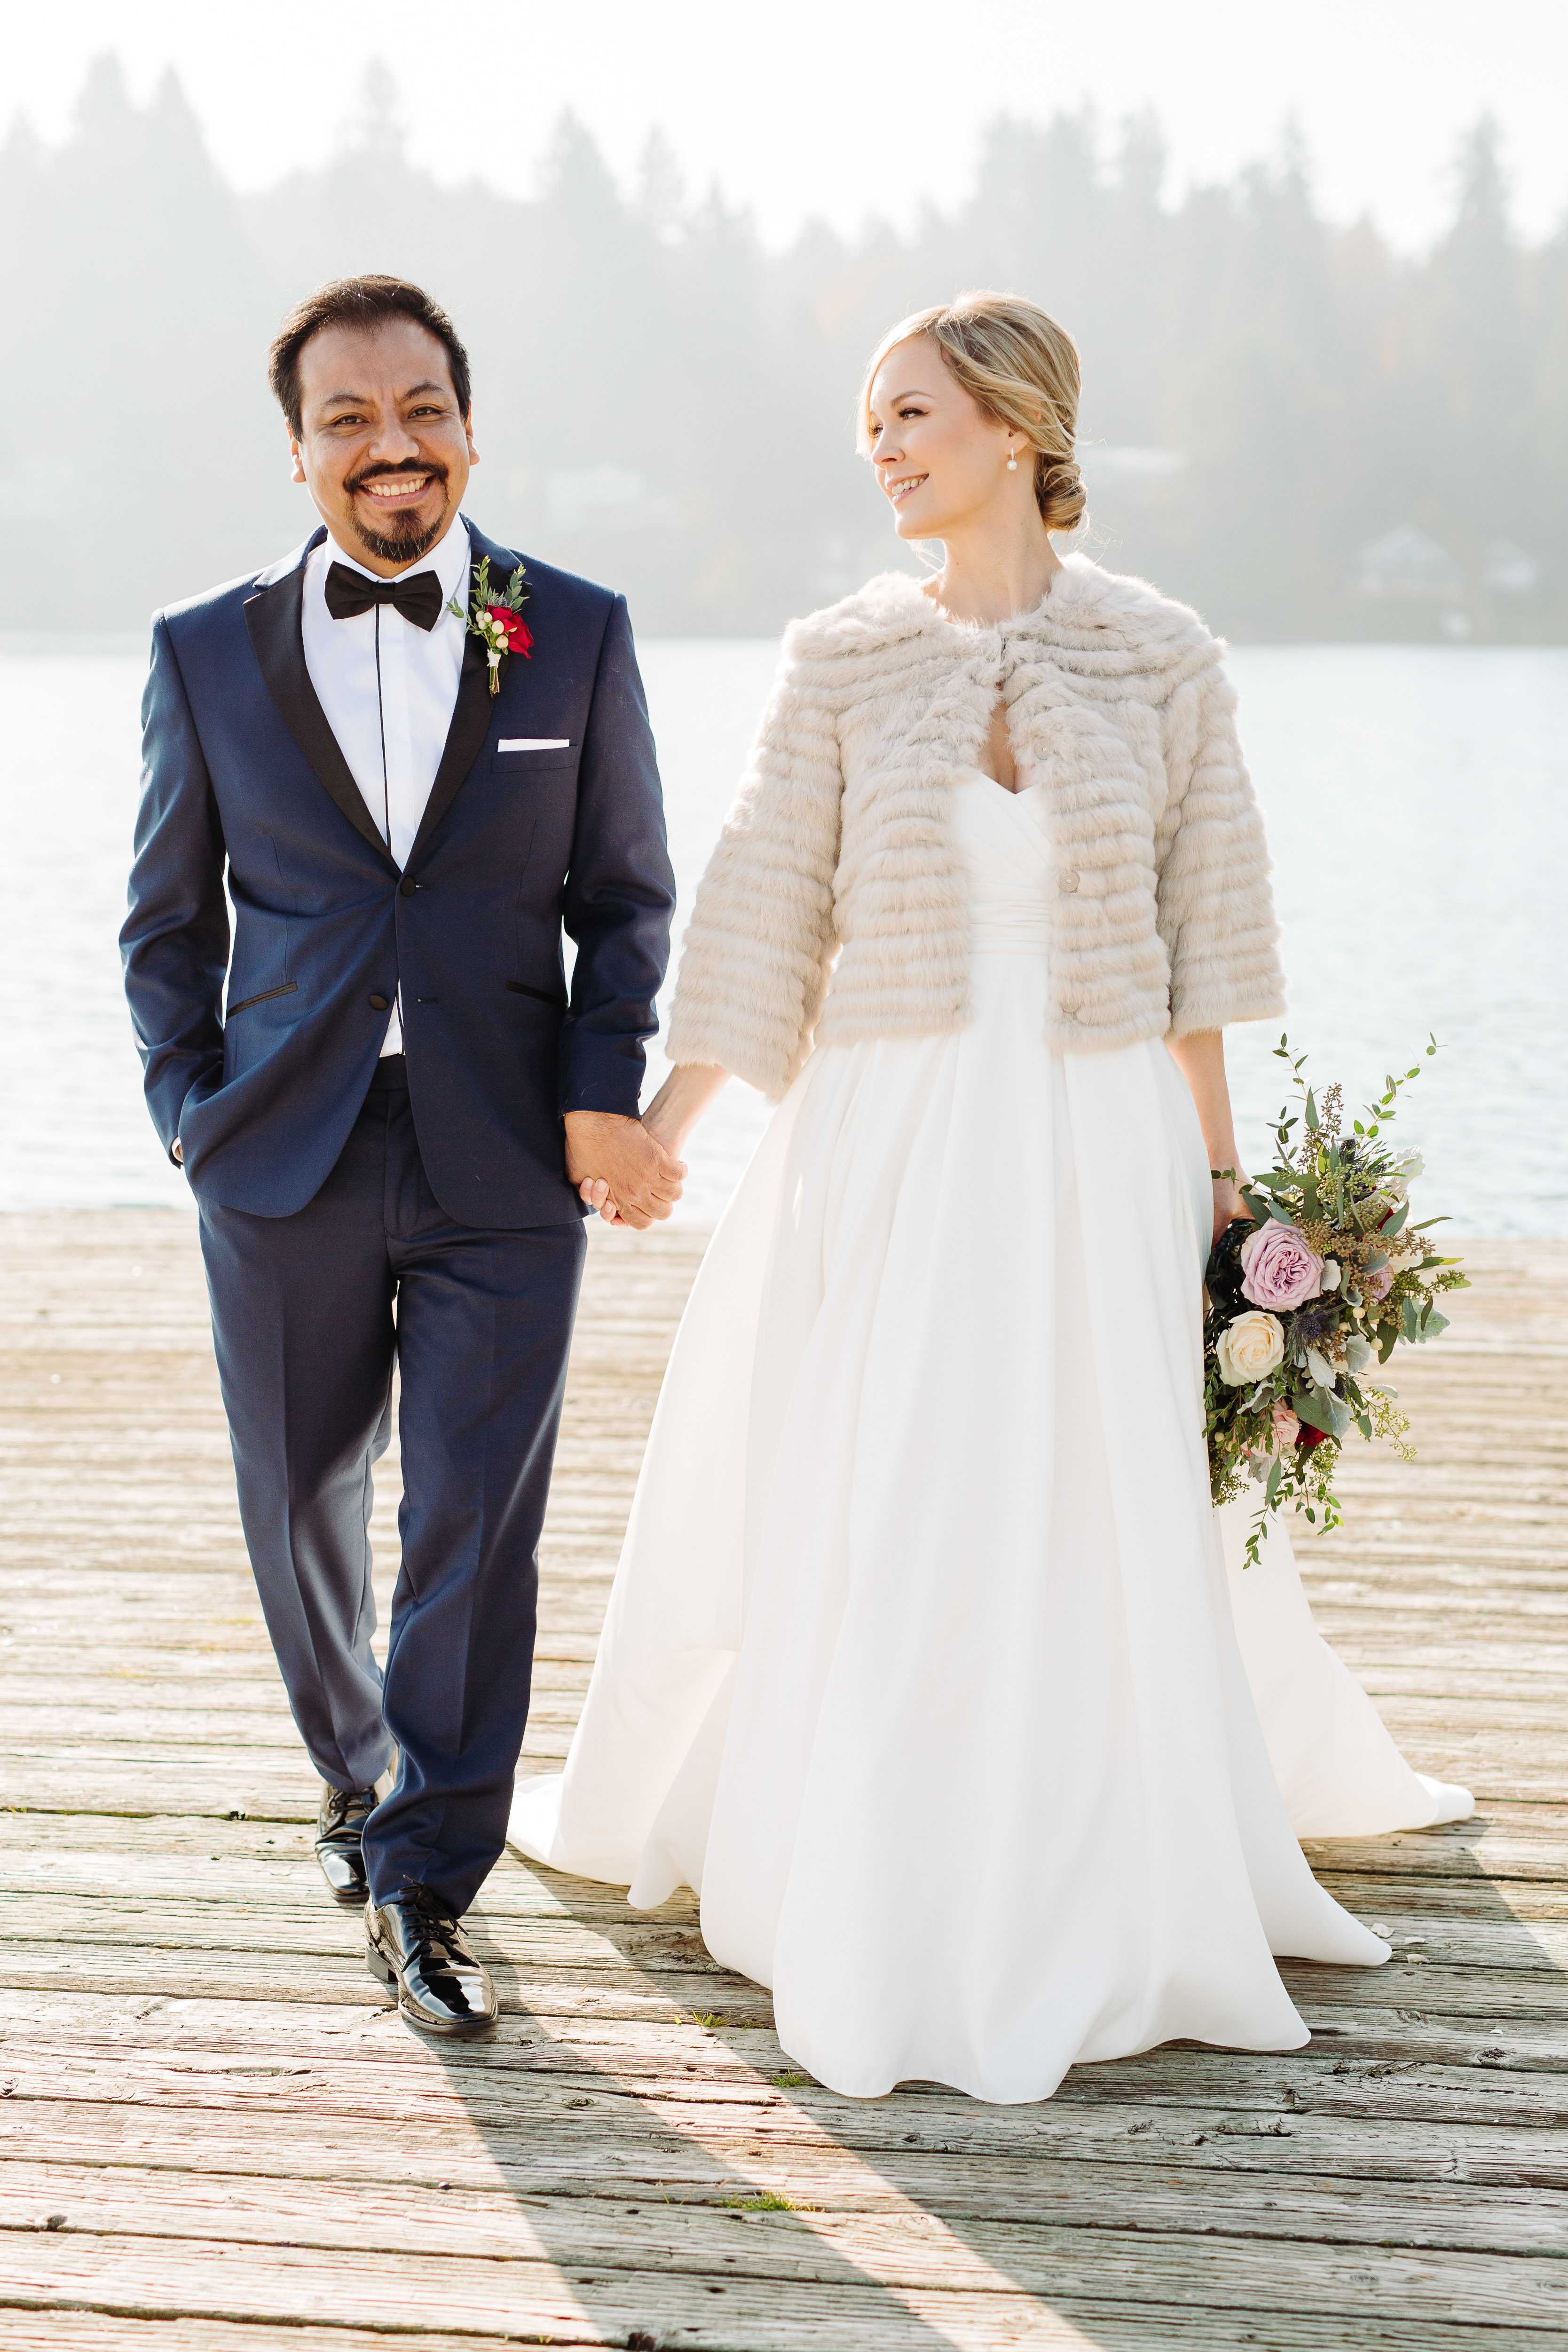 Winter wedding bride and groom - photo by Cameron Zegers Photography